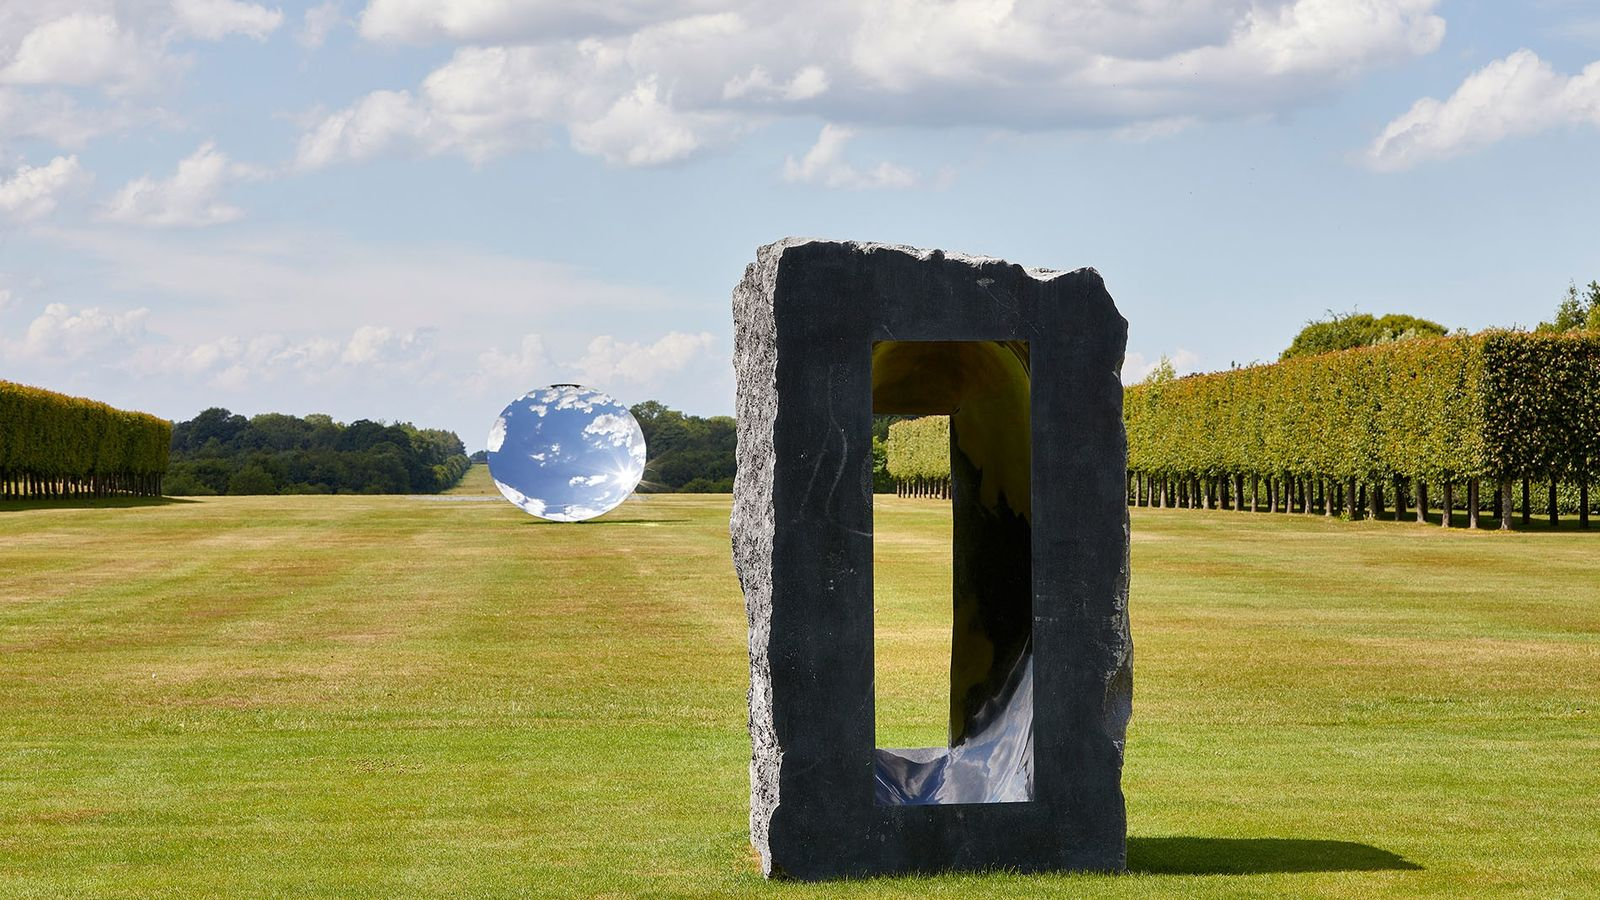 UK's largest exhibition of outdoor sculptures by the Turner Prize winner Anish Kapoor is finally open ...